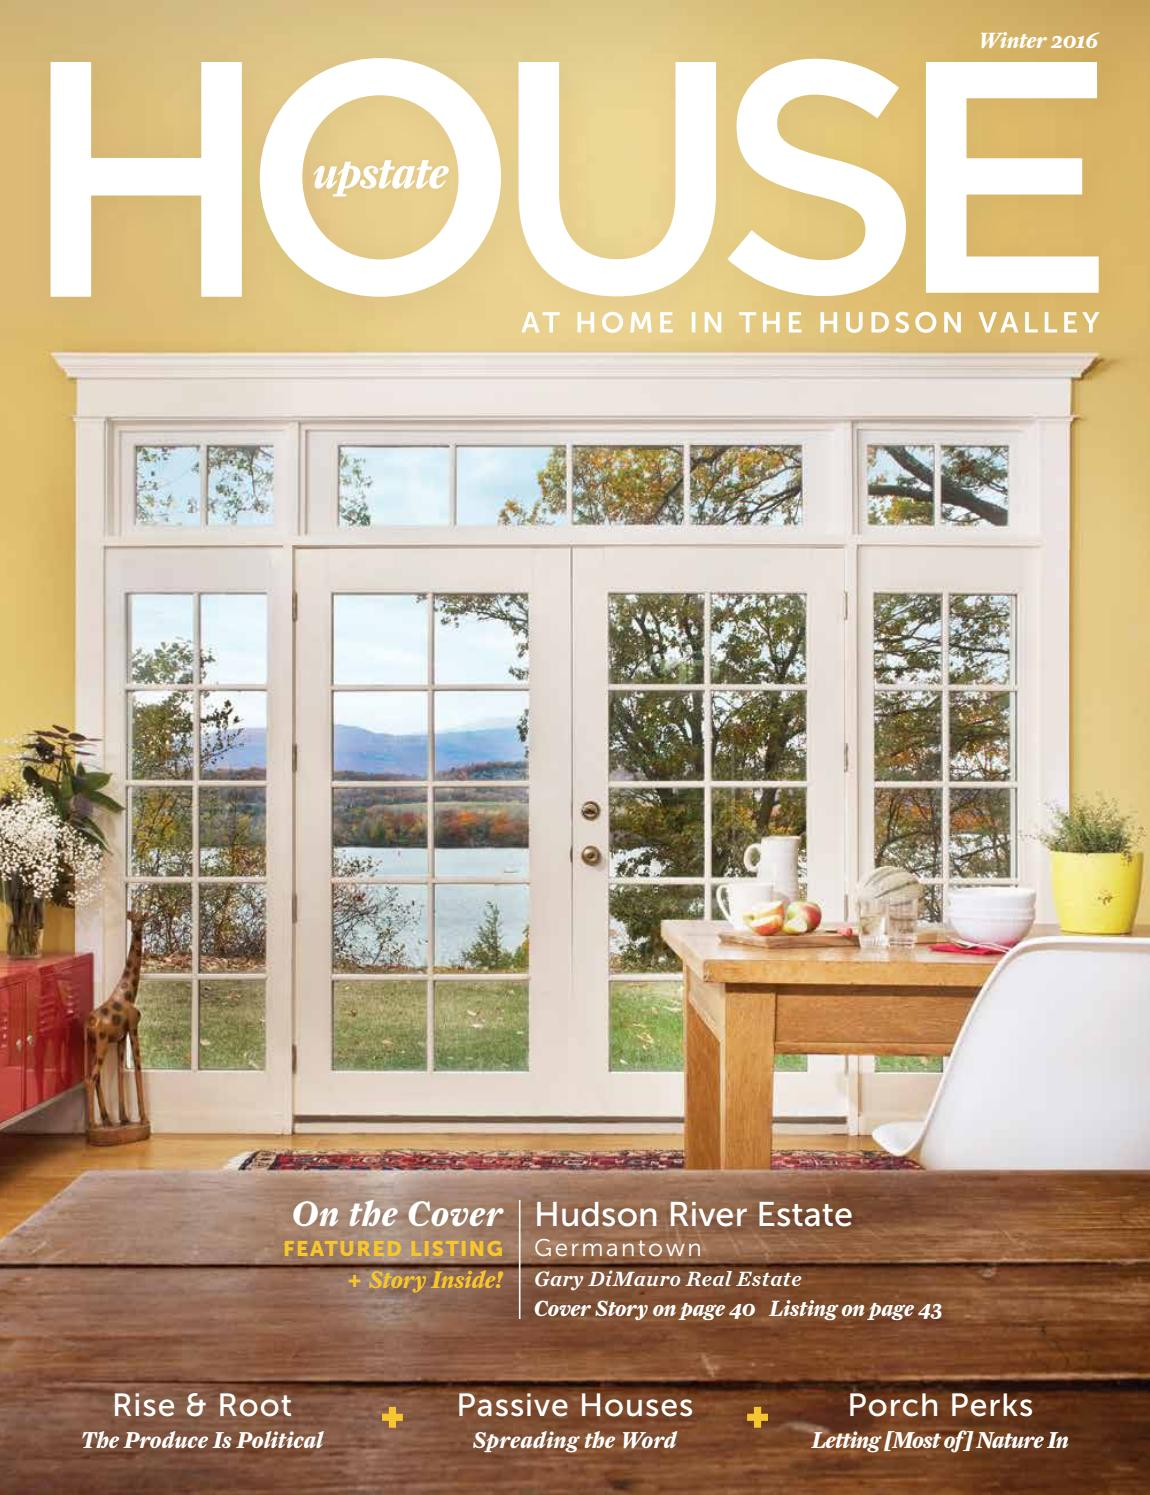 Upstate House Winter 2016 by Upstate House issuu